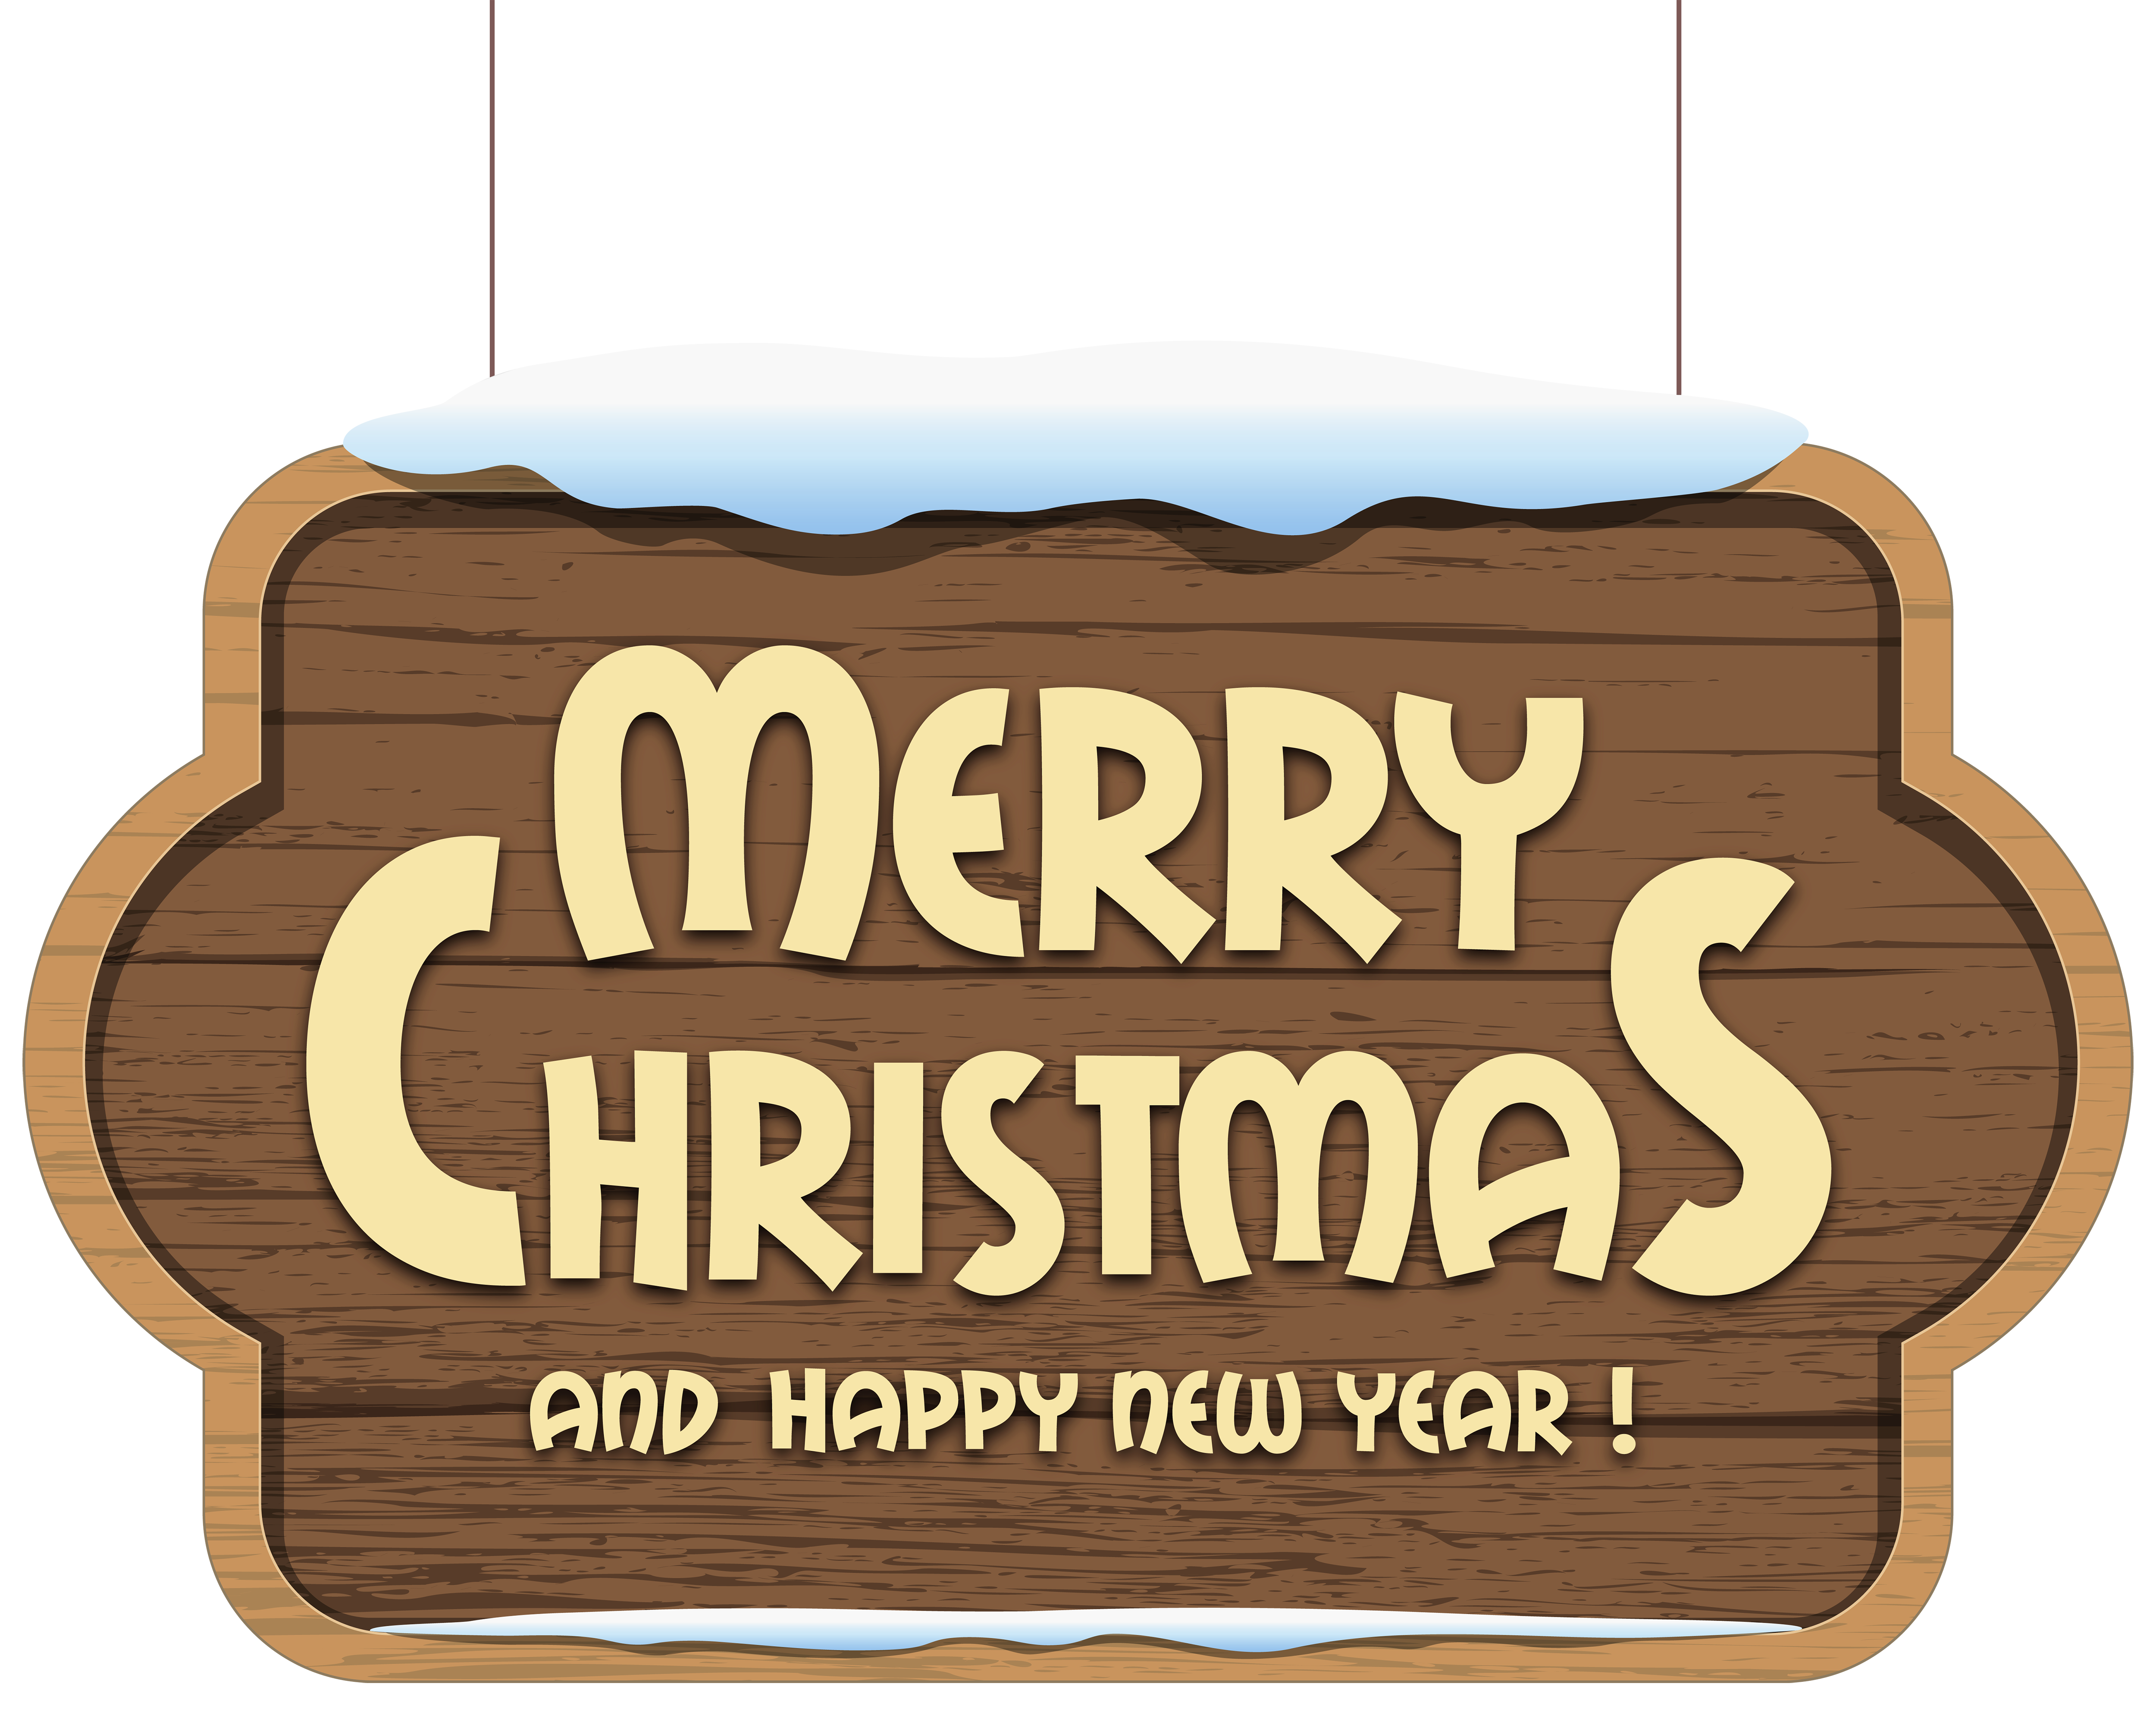 Merry christmas wooden sign. Firewood clipart kayu